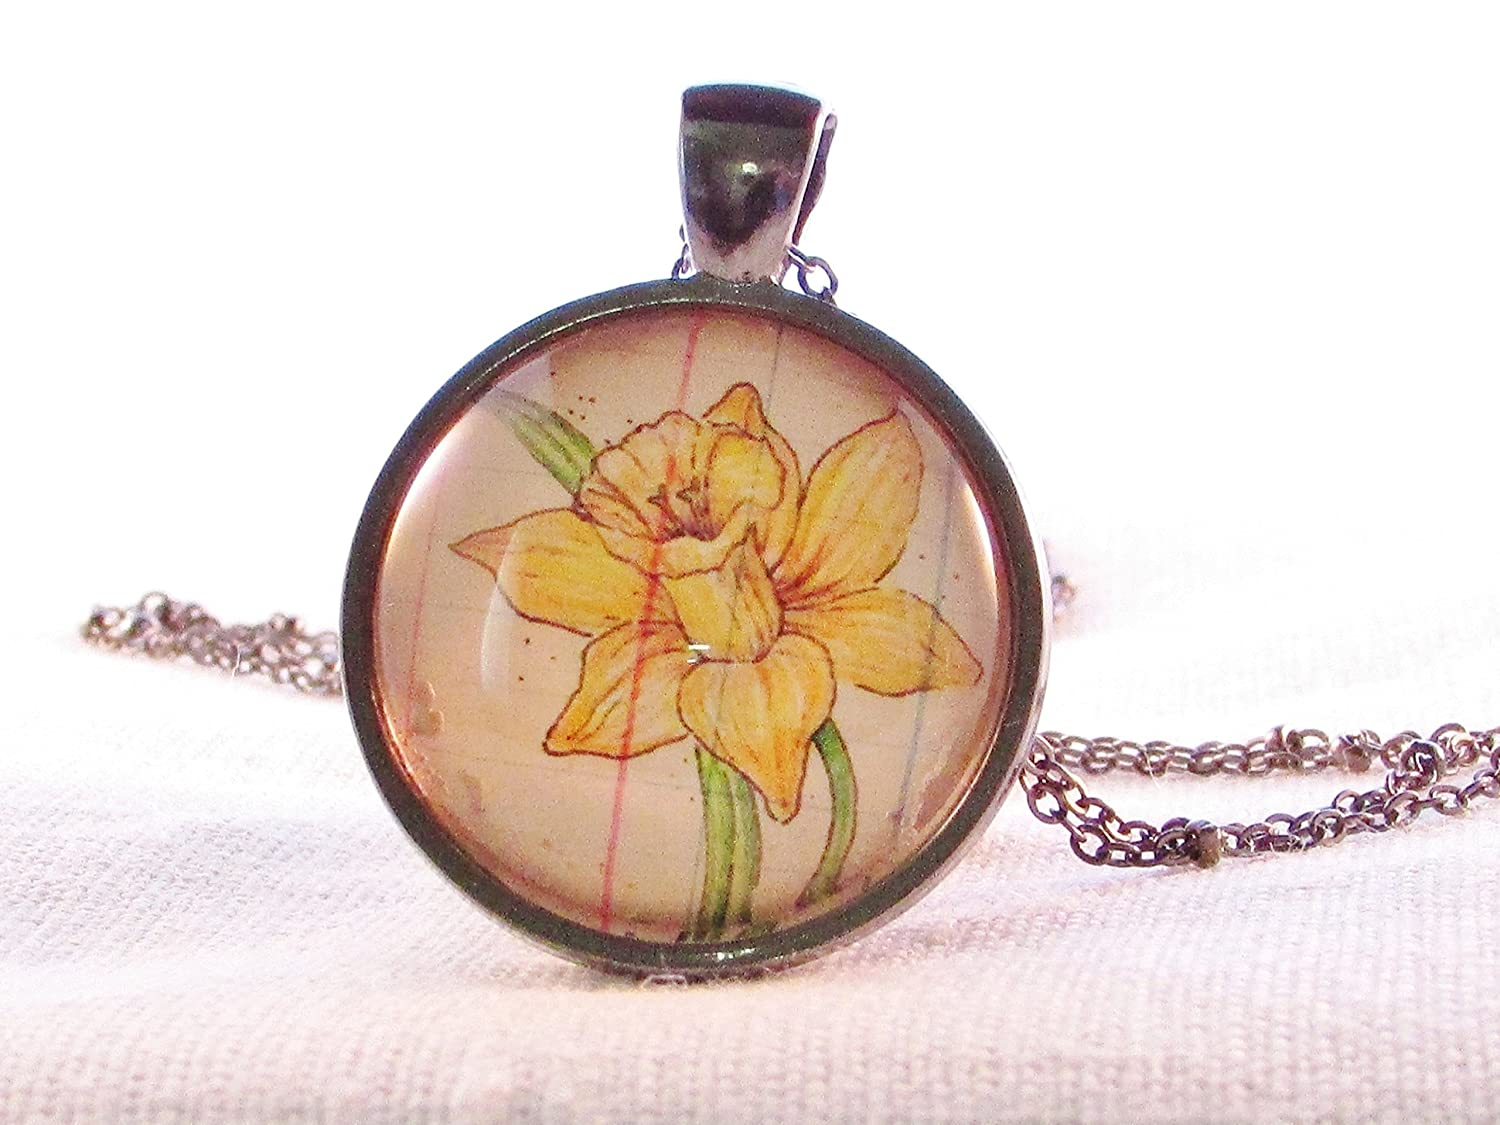 March Birth Month Flower Daffodil Necklace Pendant Wearable Art Yellow Flower Birthday Gift Idea